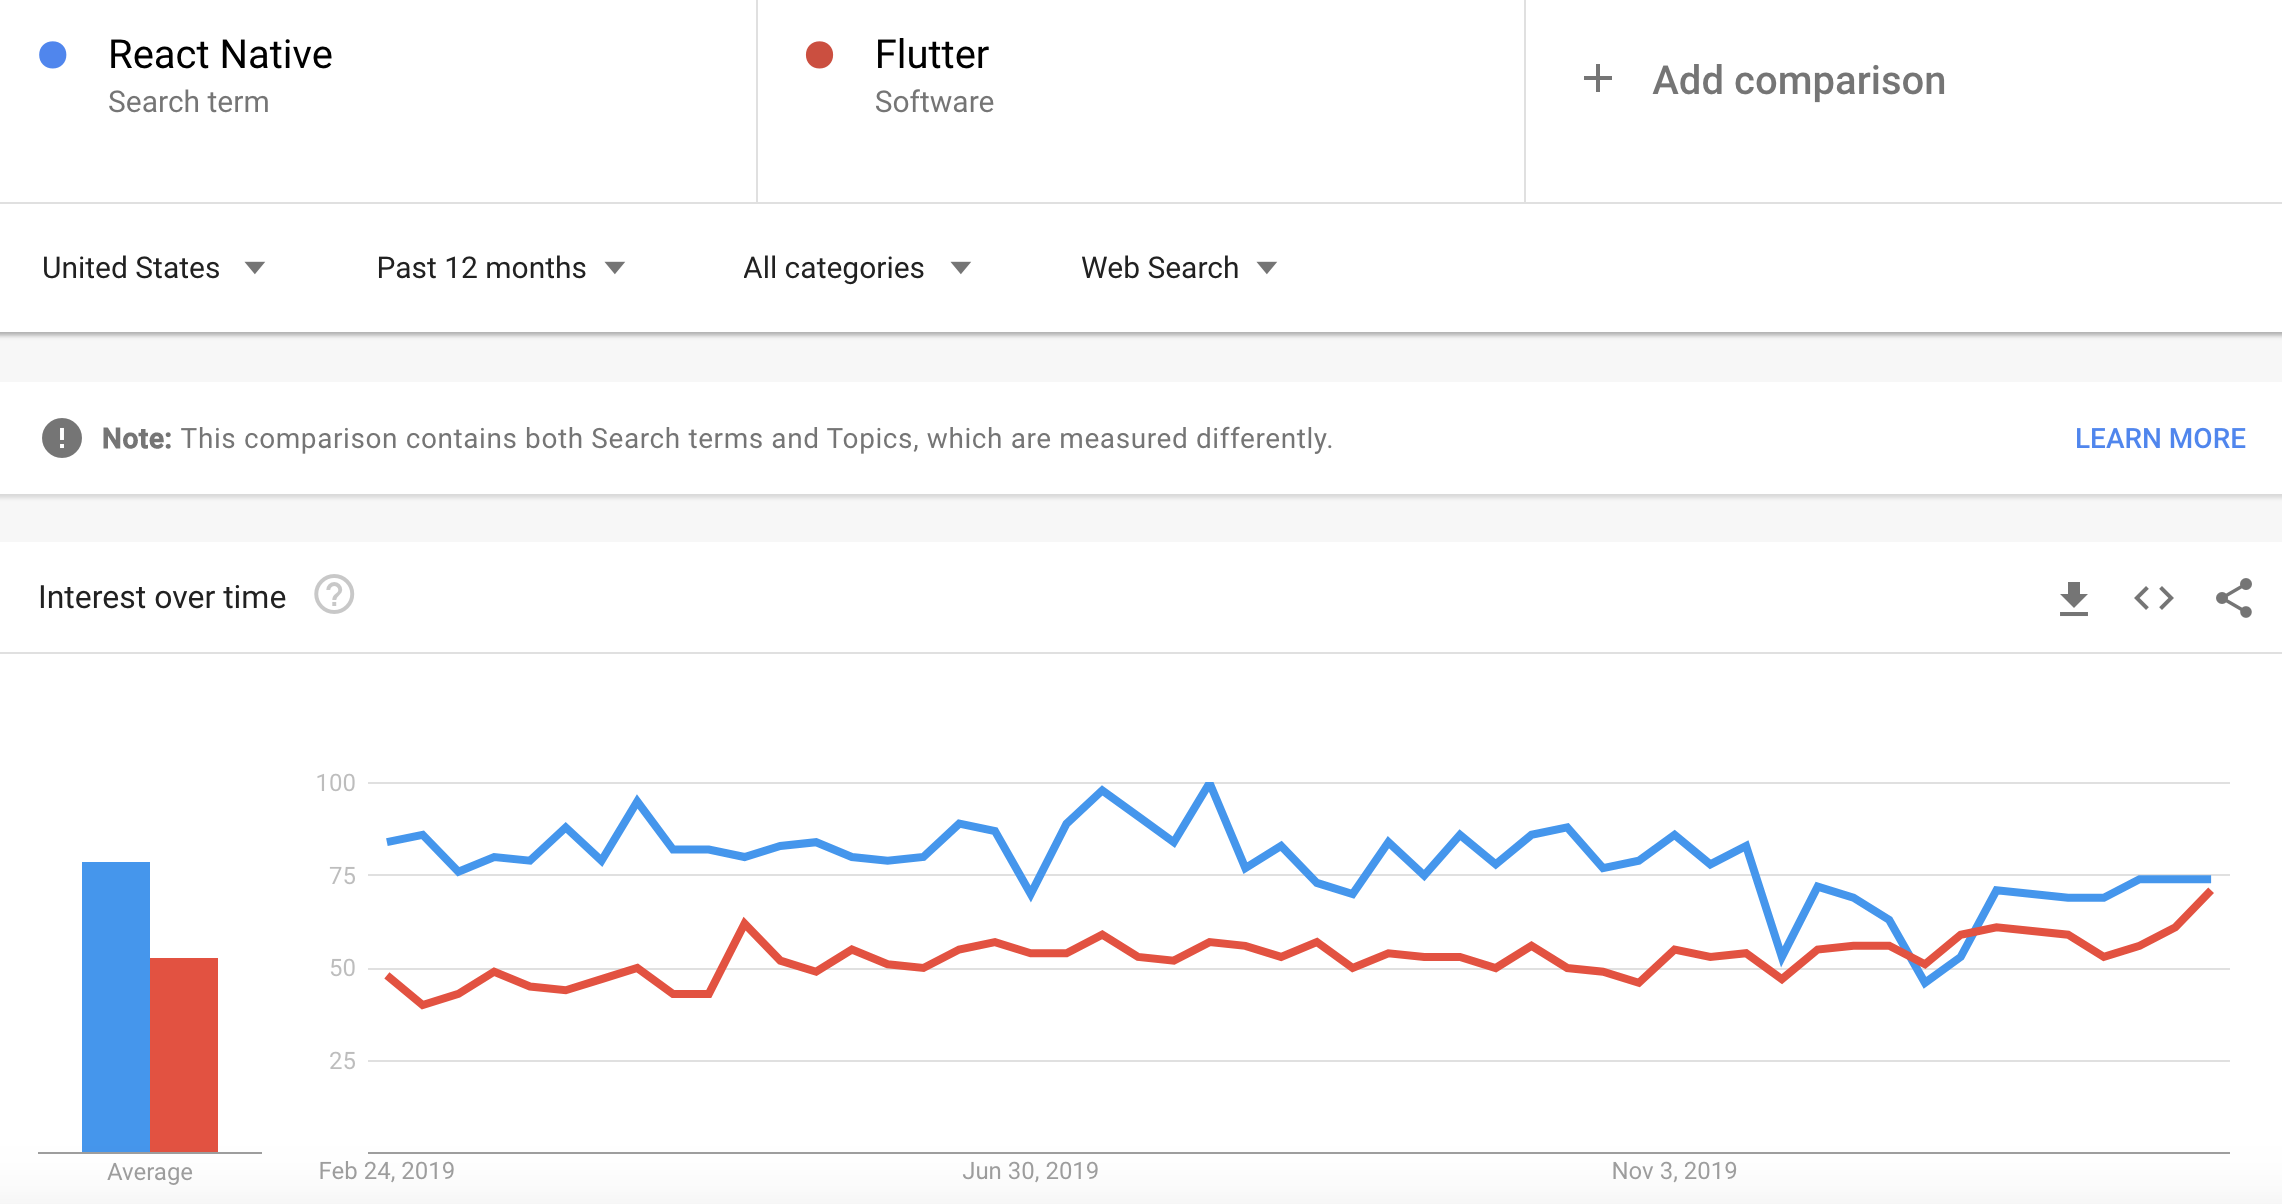 Flutter and React Native popularity